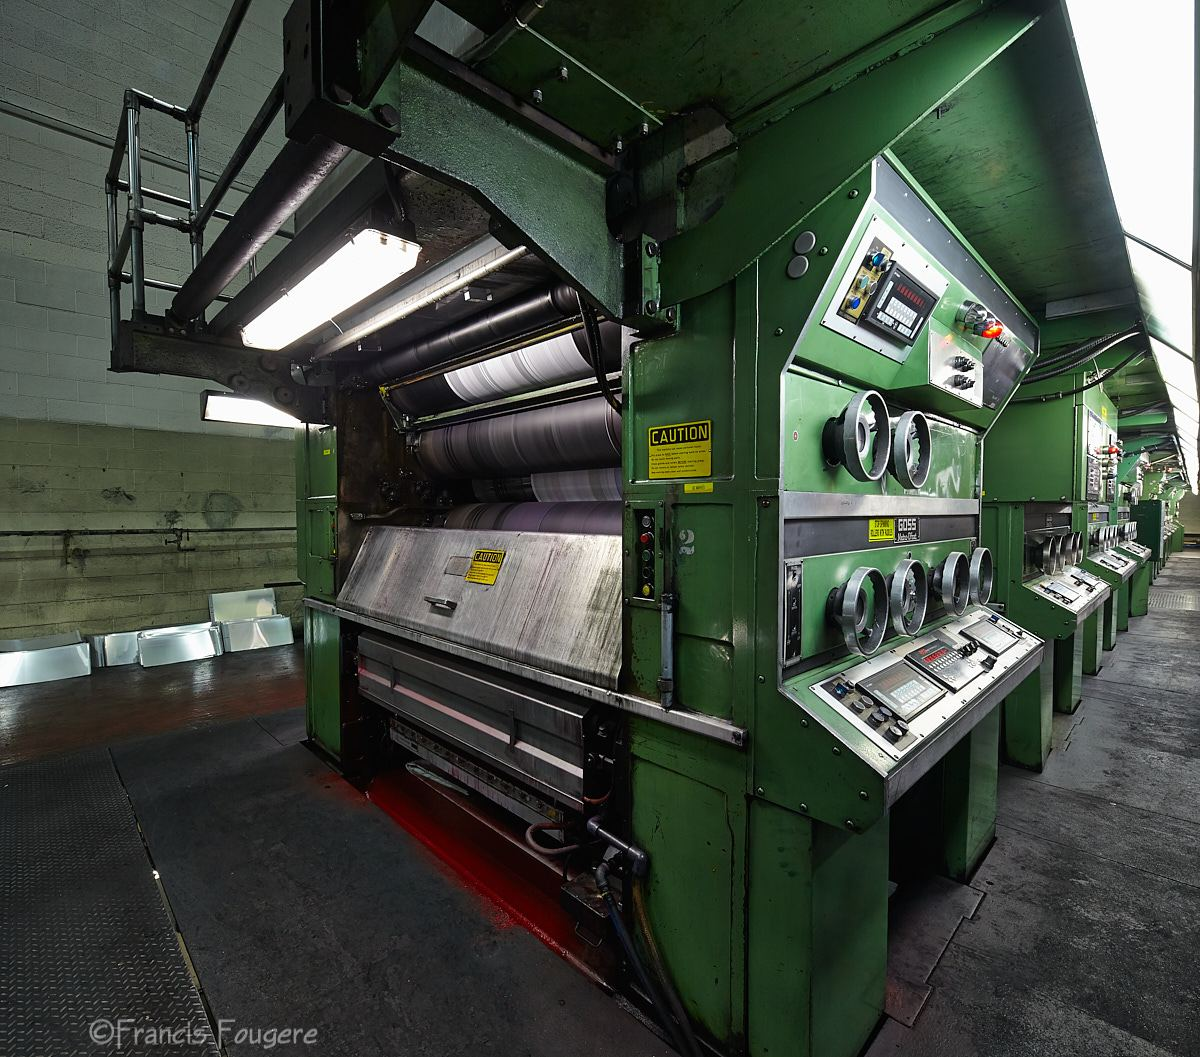 Commercial_Industrial-061